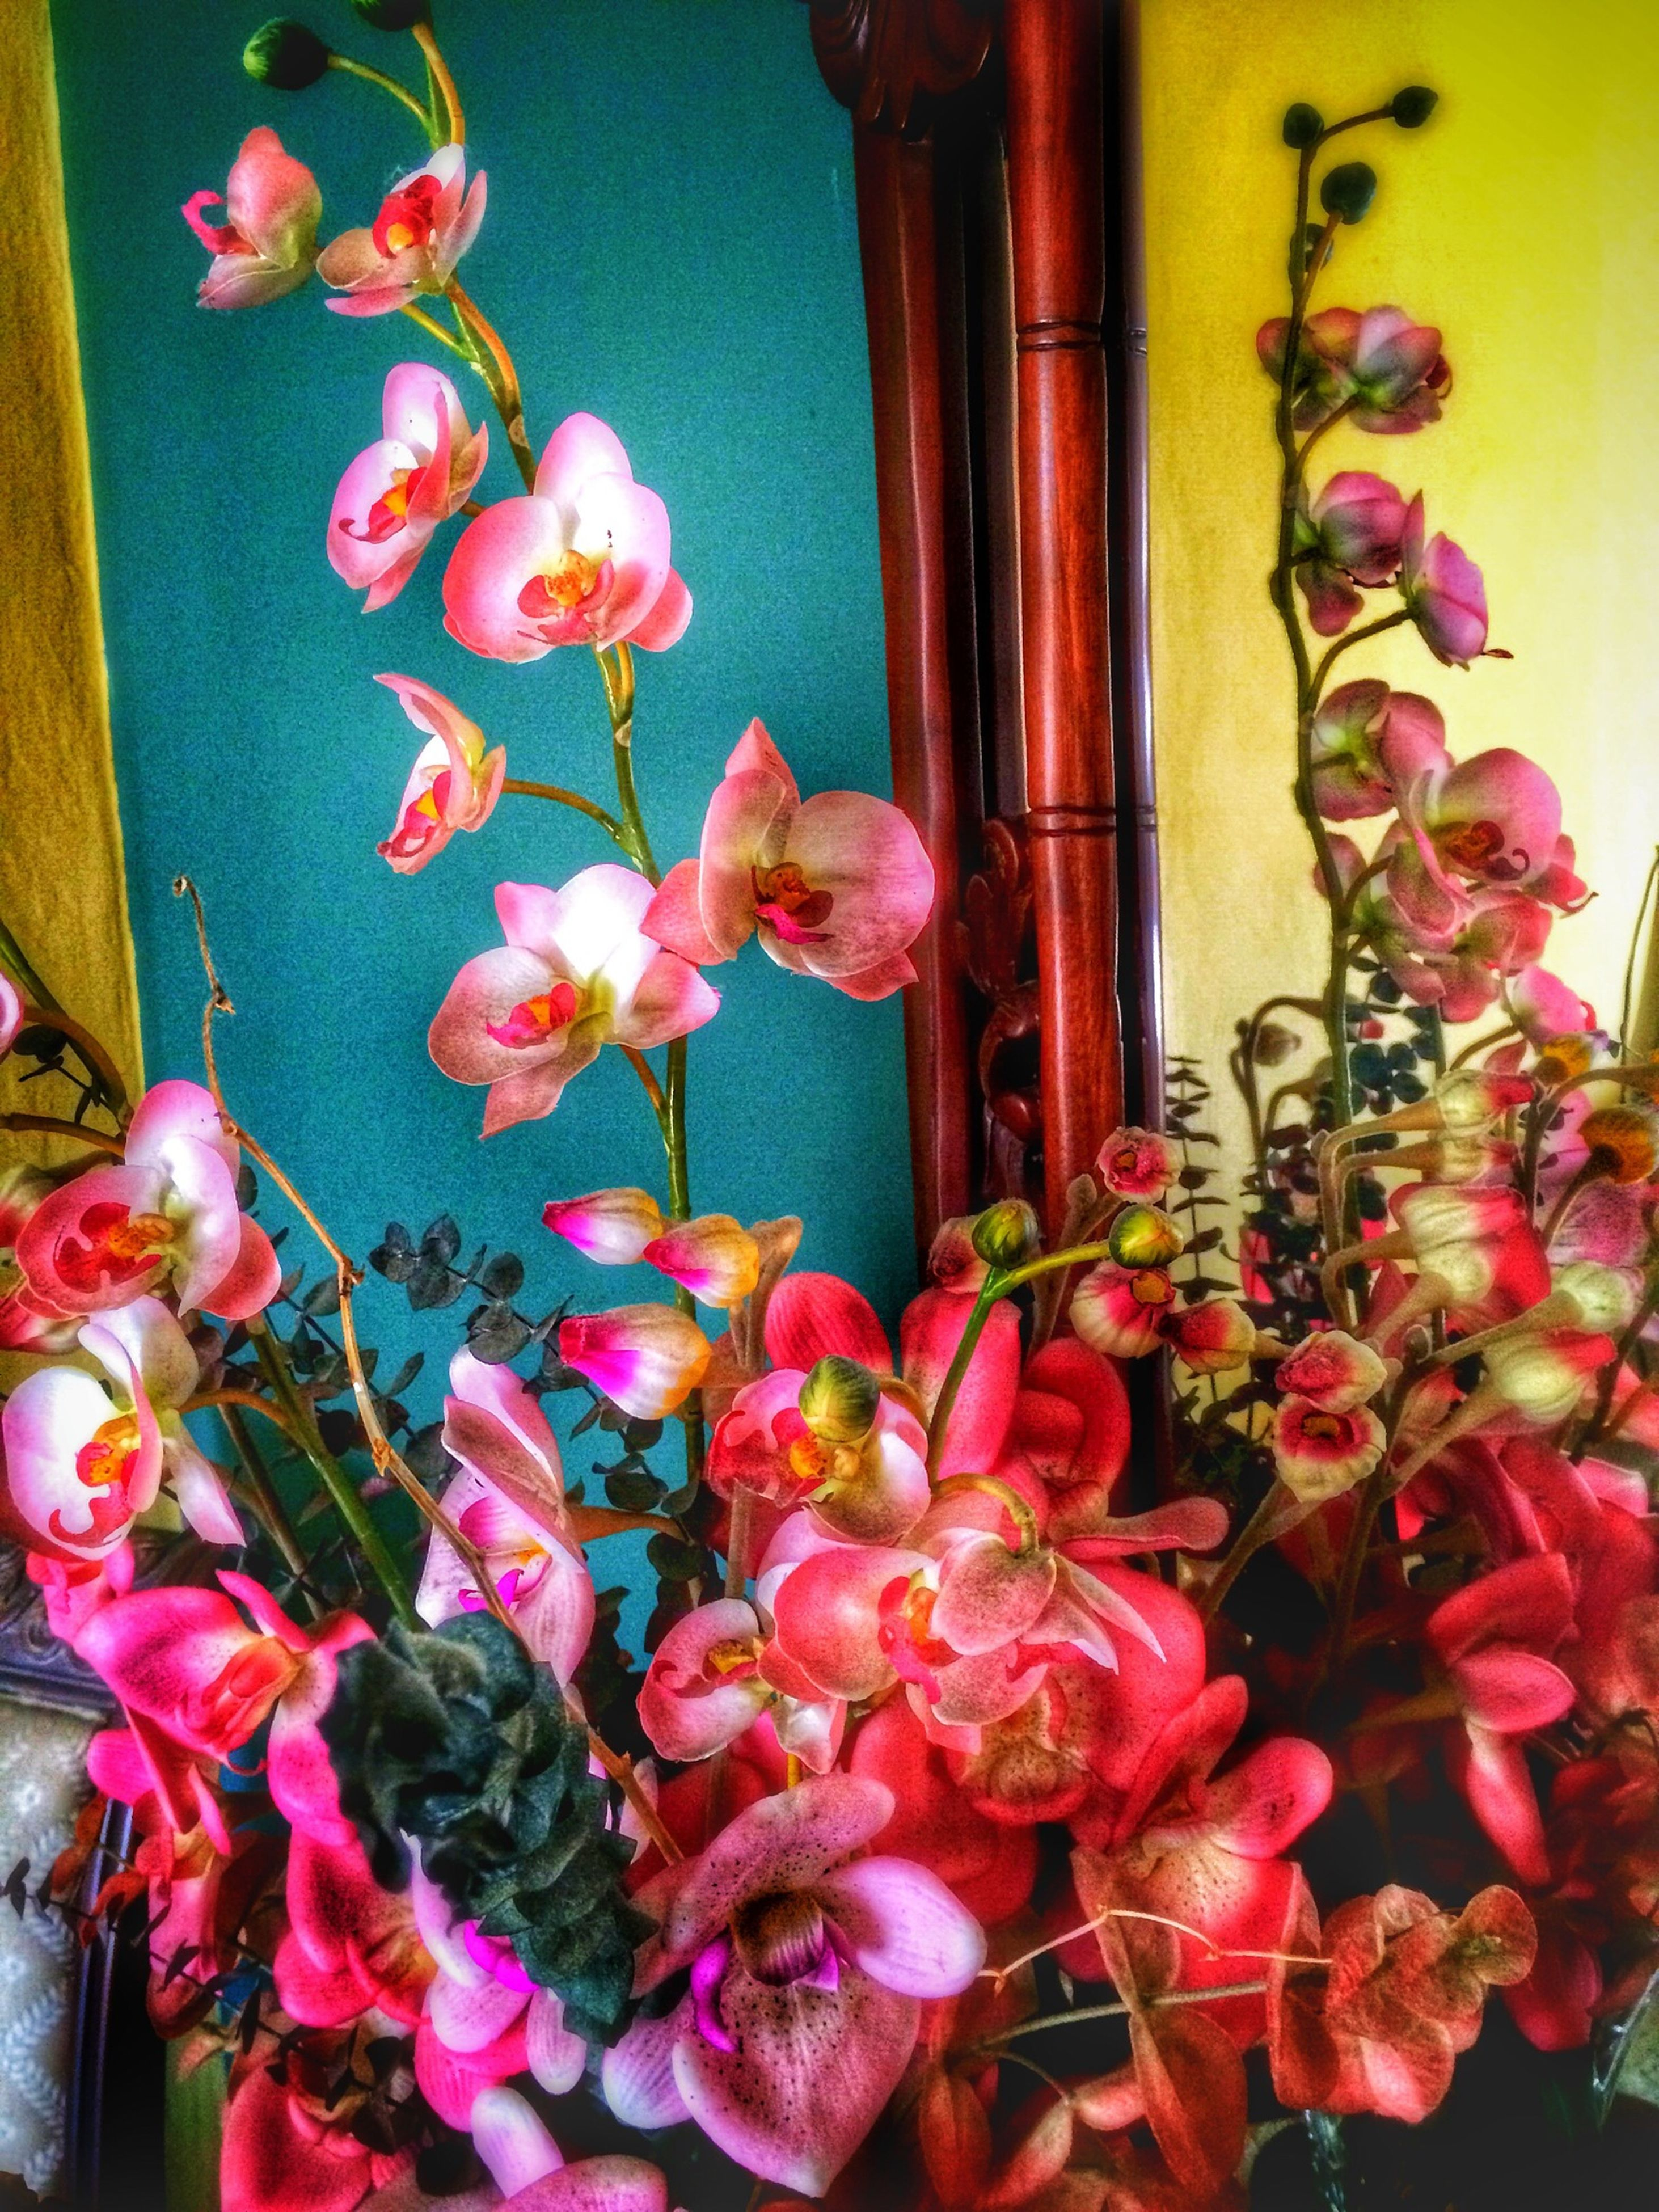 flower, freshness, petal, fragility, indoors, pink color, plant, growth, decoration, red, vase, potted plant, beauty in nature, flower head, nature, close-up, wall - building feature, bunch of flowers, blooming, home interior